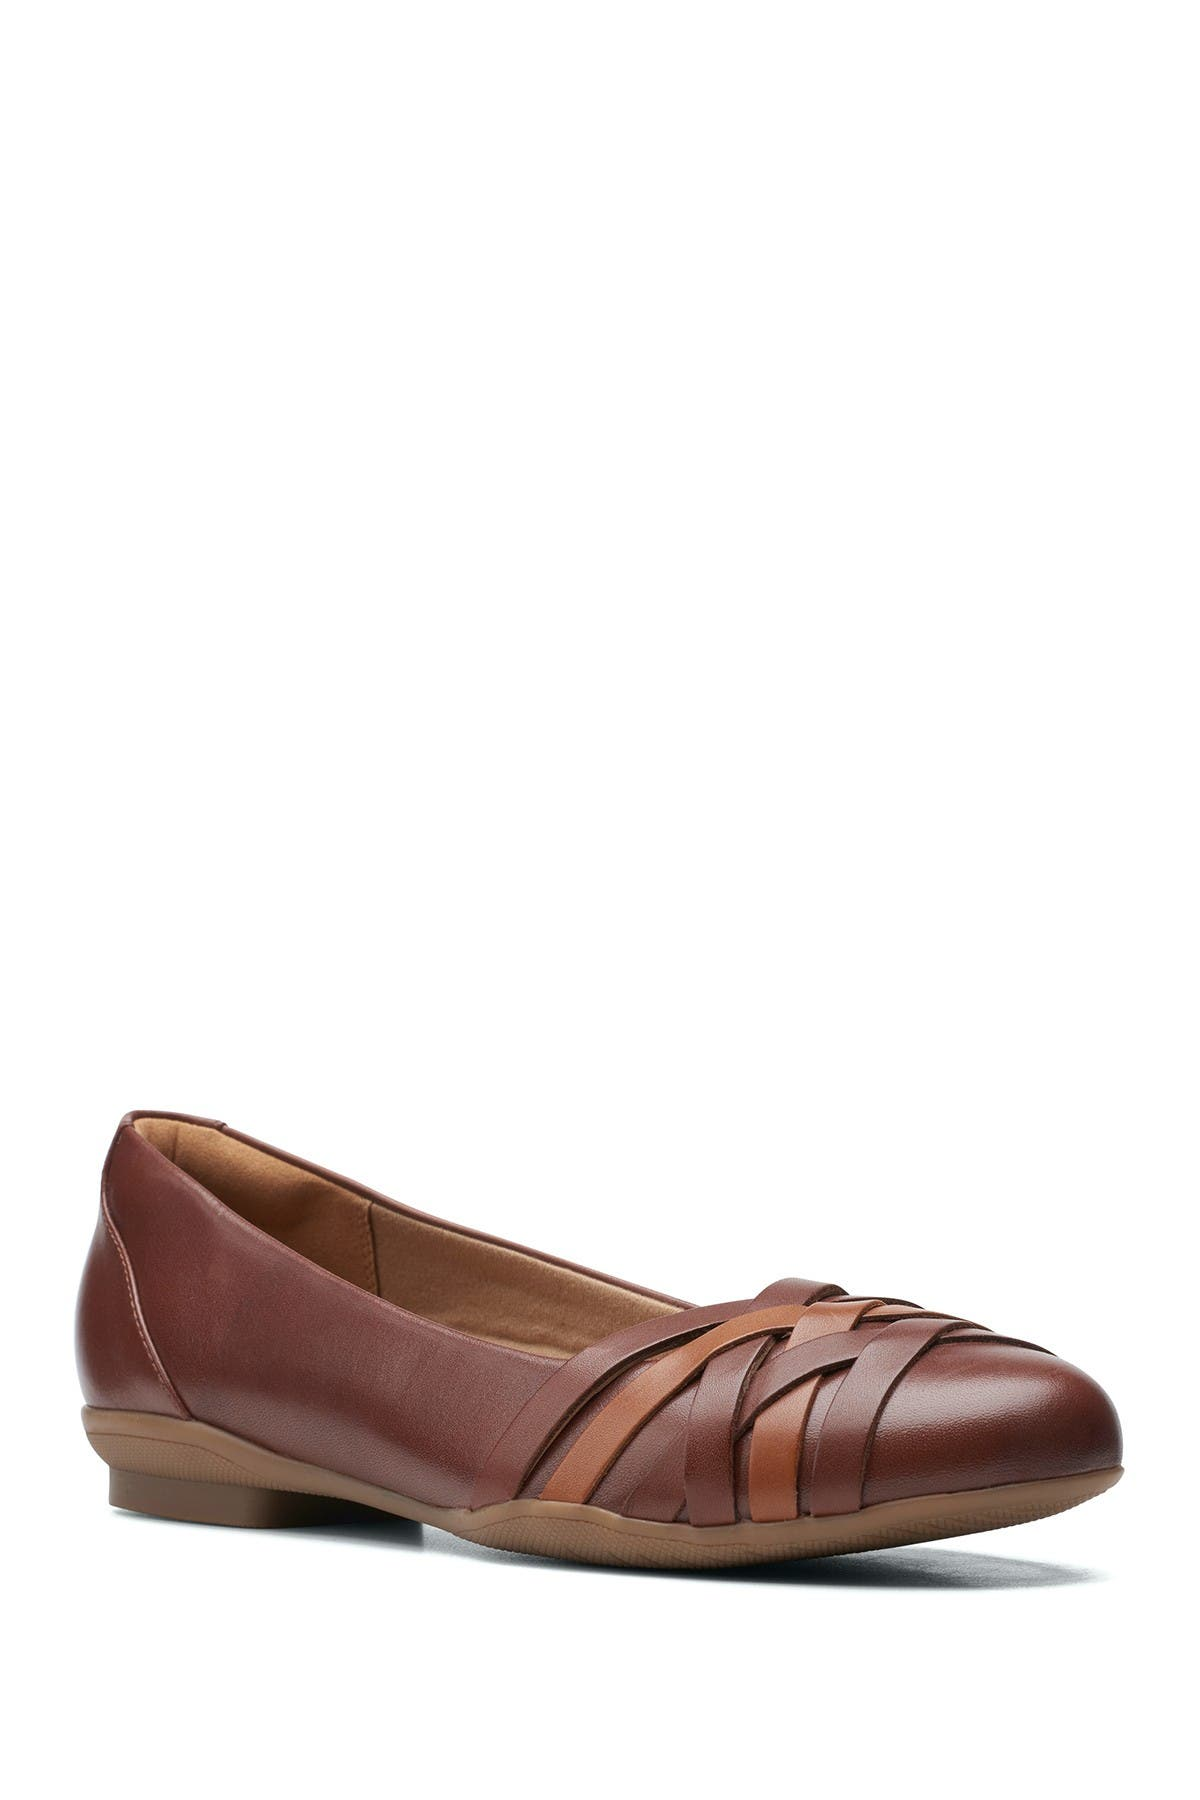 Clarks Slippers SARA CLOVER LEATHER STRAPPY FLAT